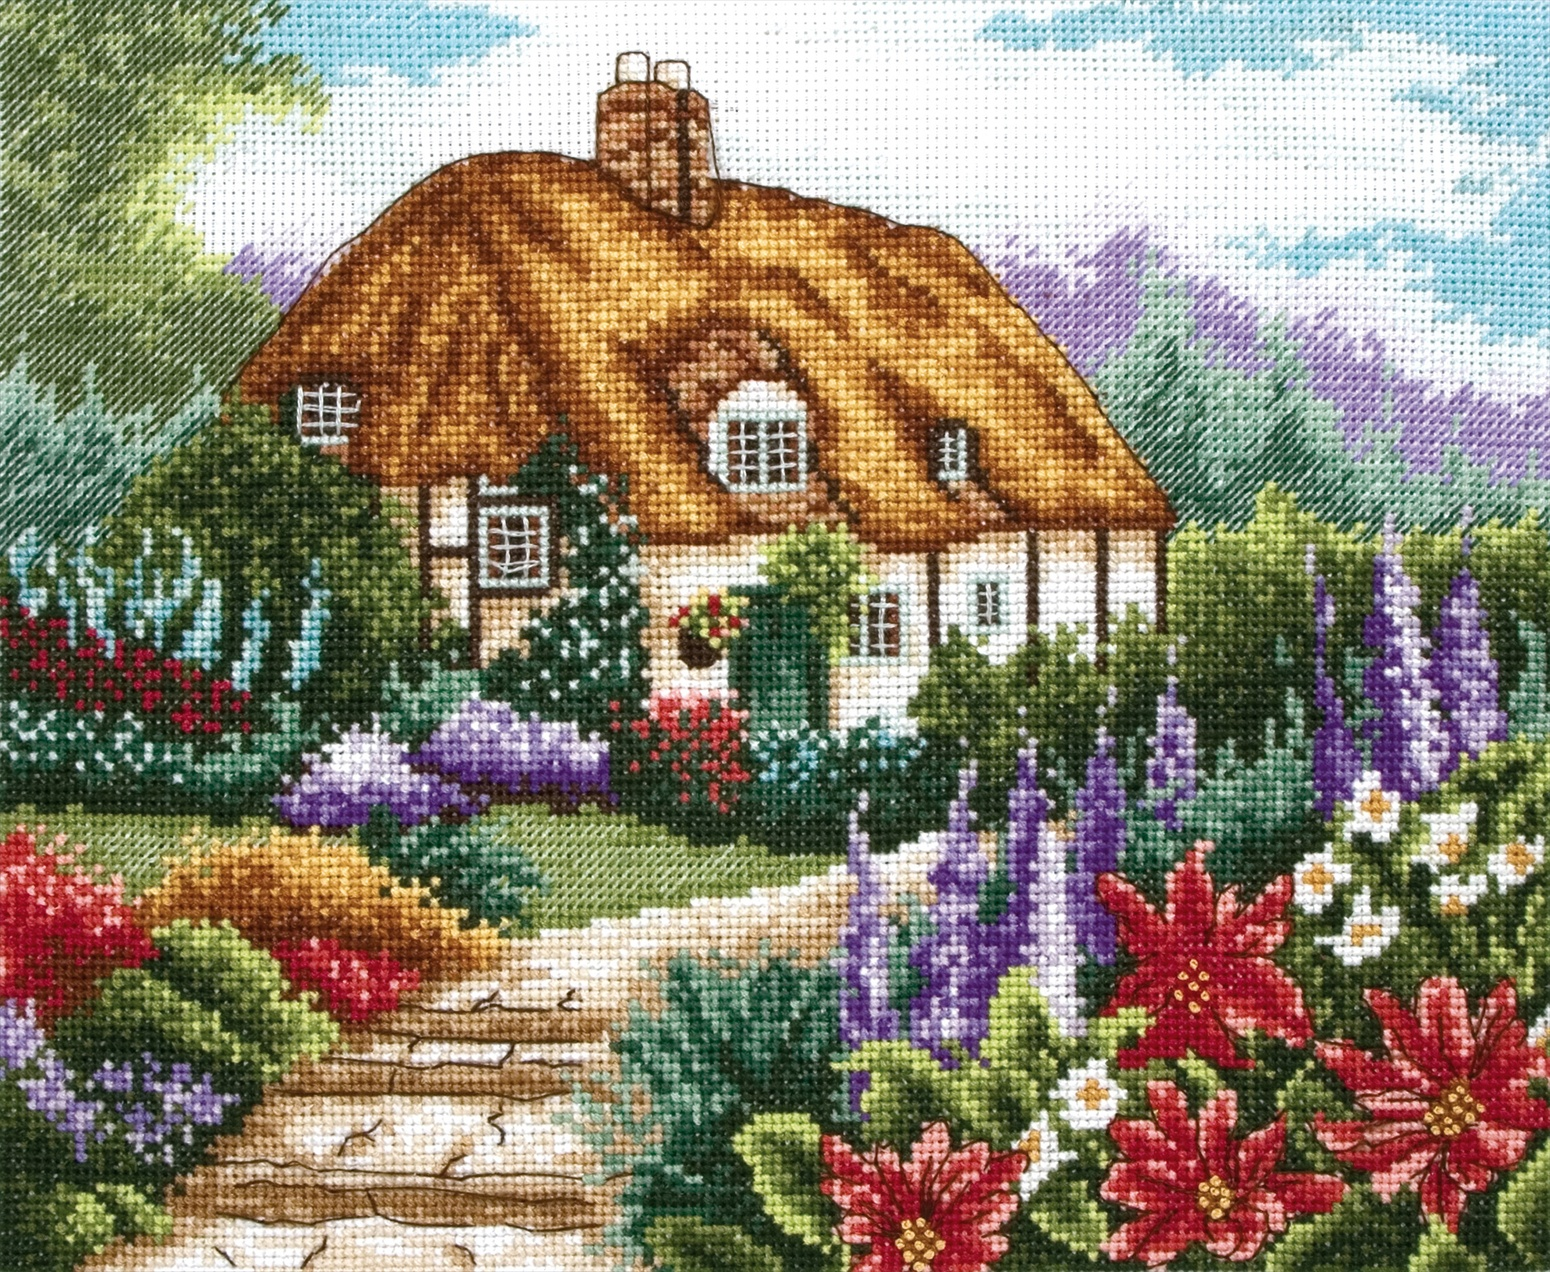 PCE593 Anchor CS - Cottage Garden In Bloom. Anchor. Набор для вышивания нитками